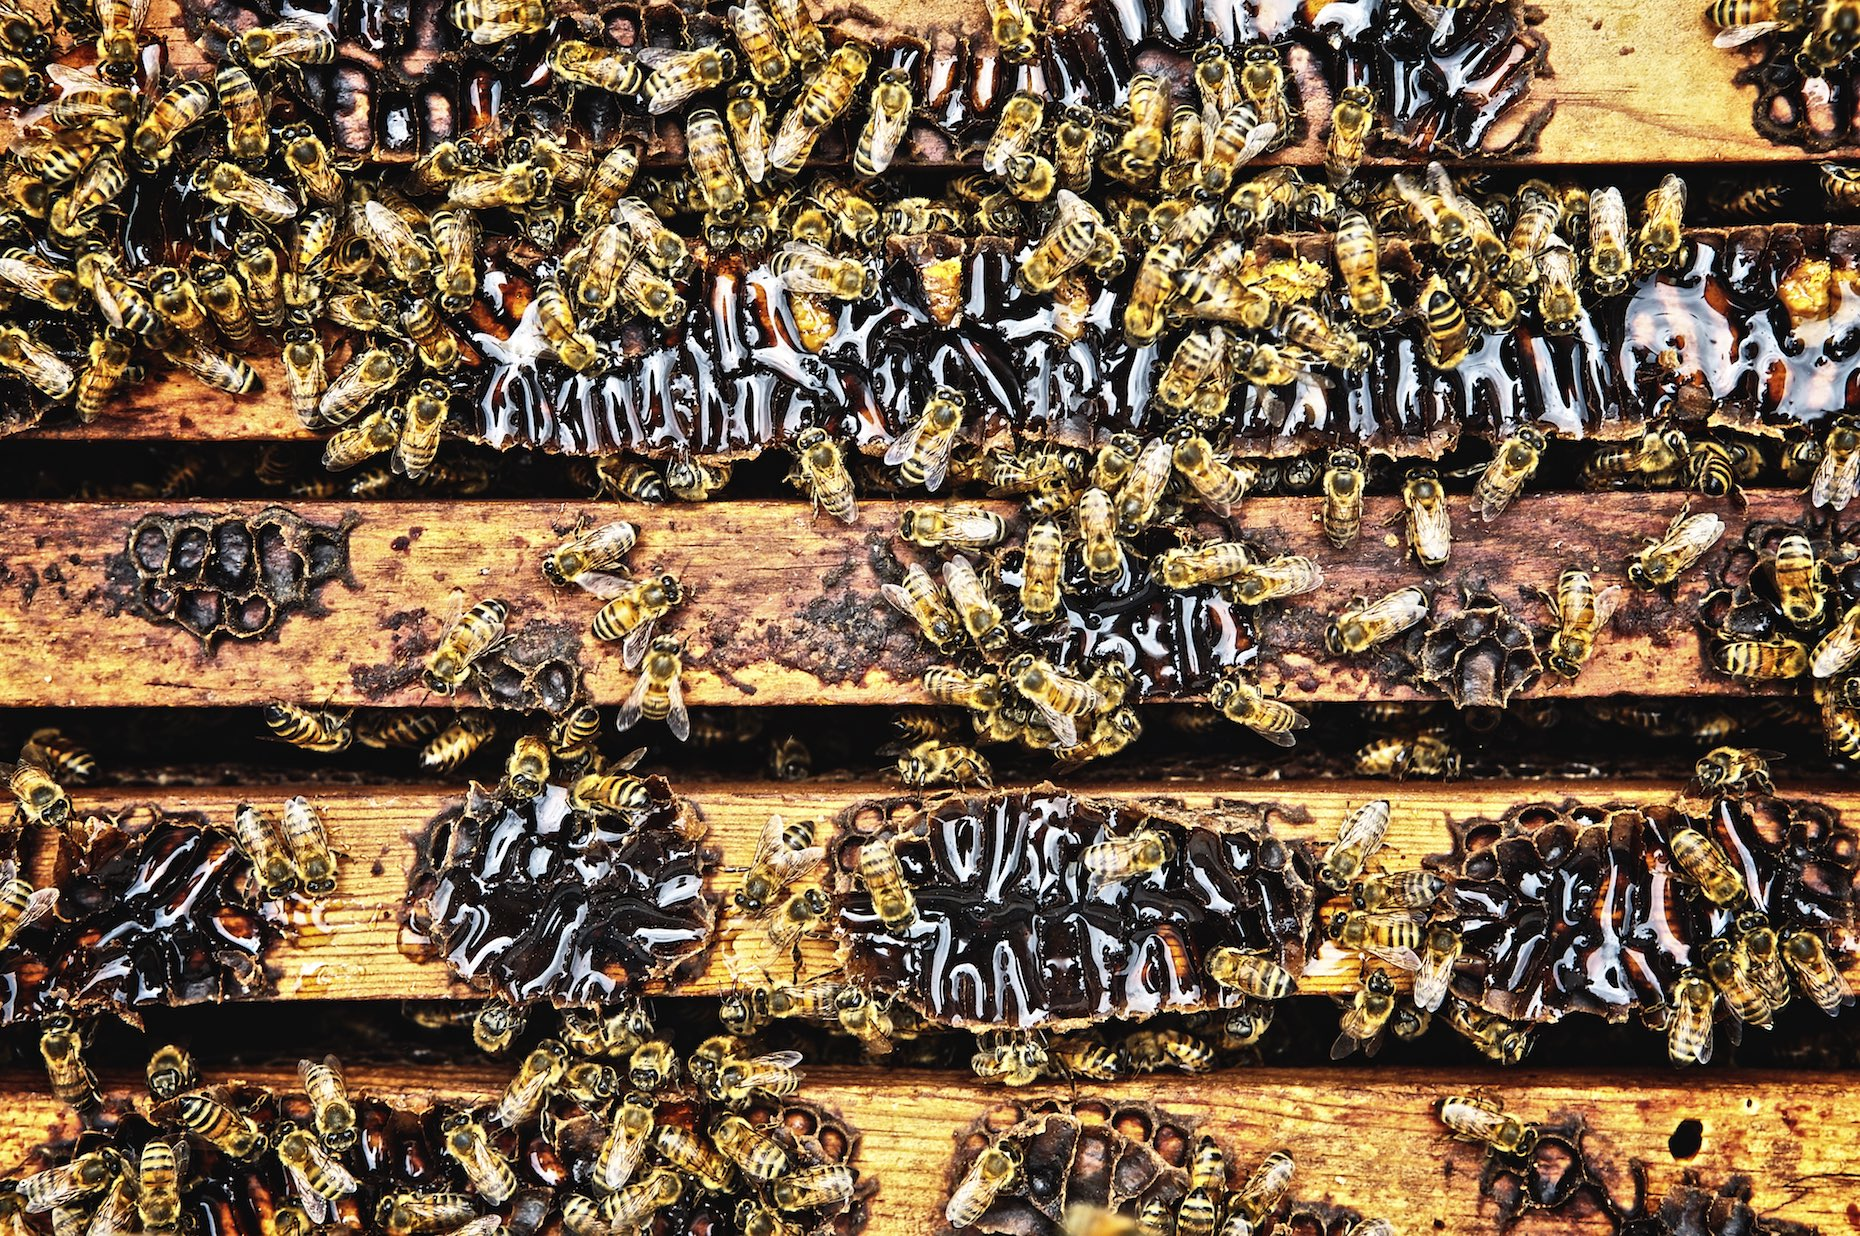 Honeybees making honey in a wooden hive.